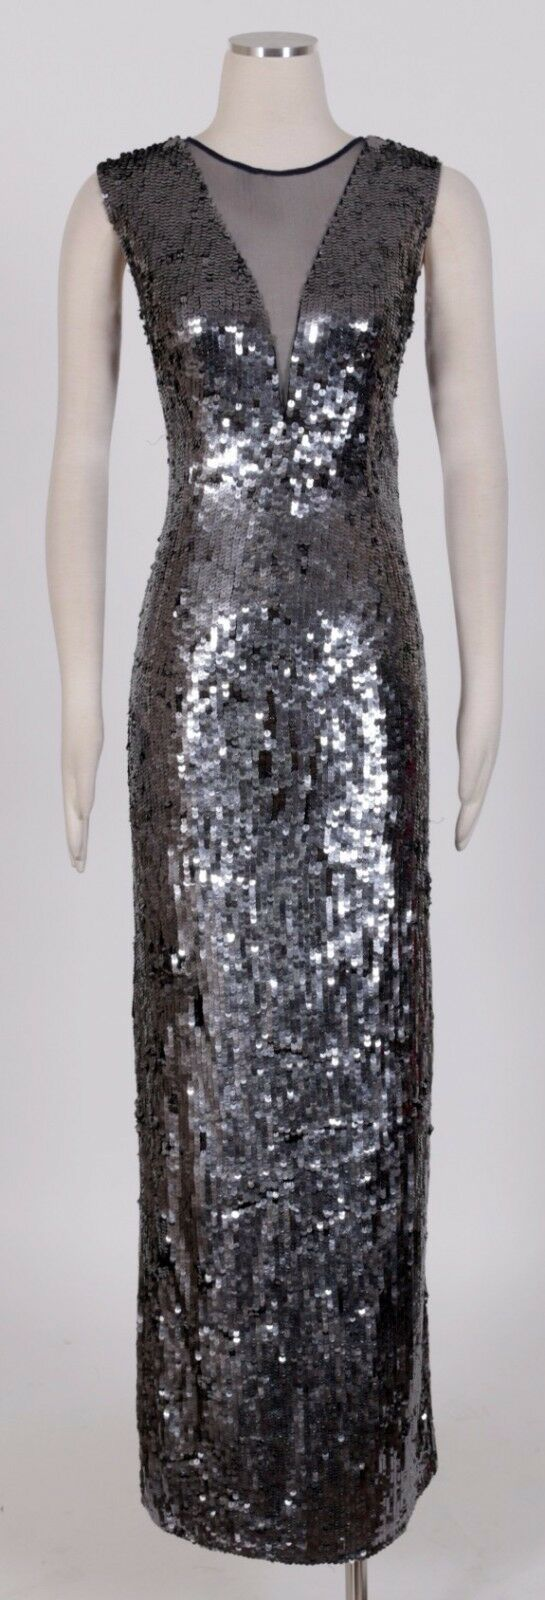 JS COLLECTIONS Grey Sz 10 Women's Formal Sequin Sheath Dress New